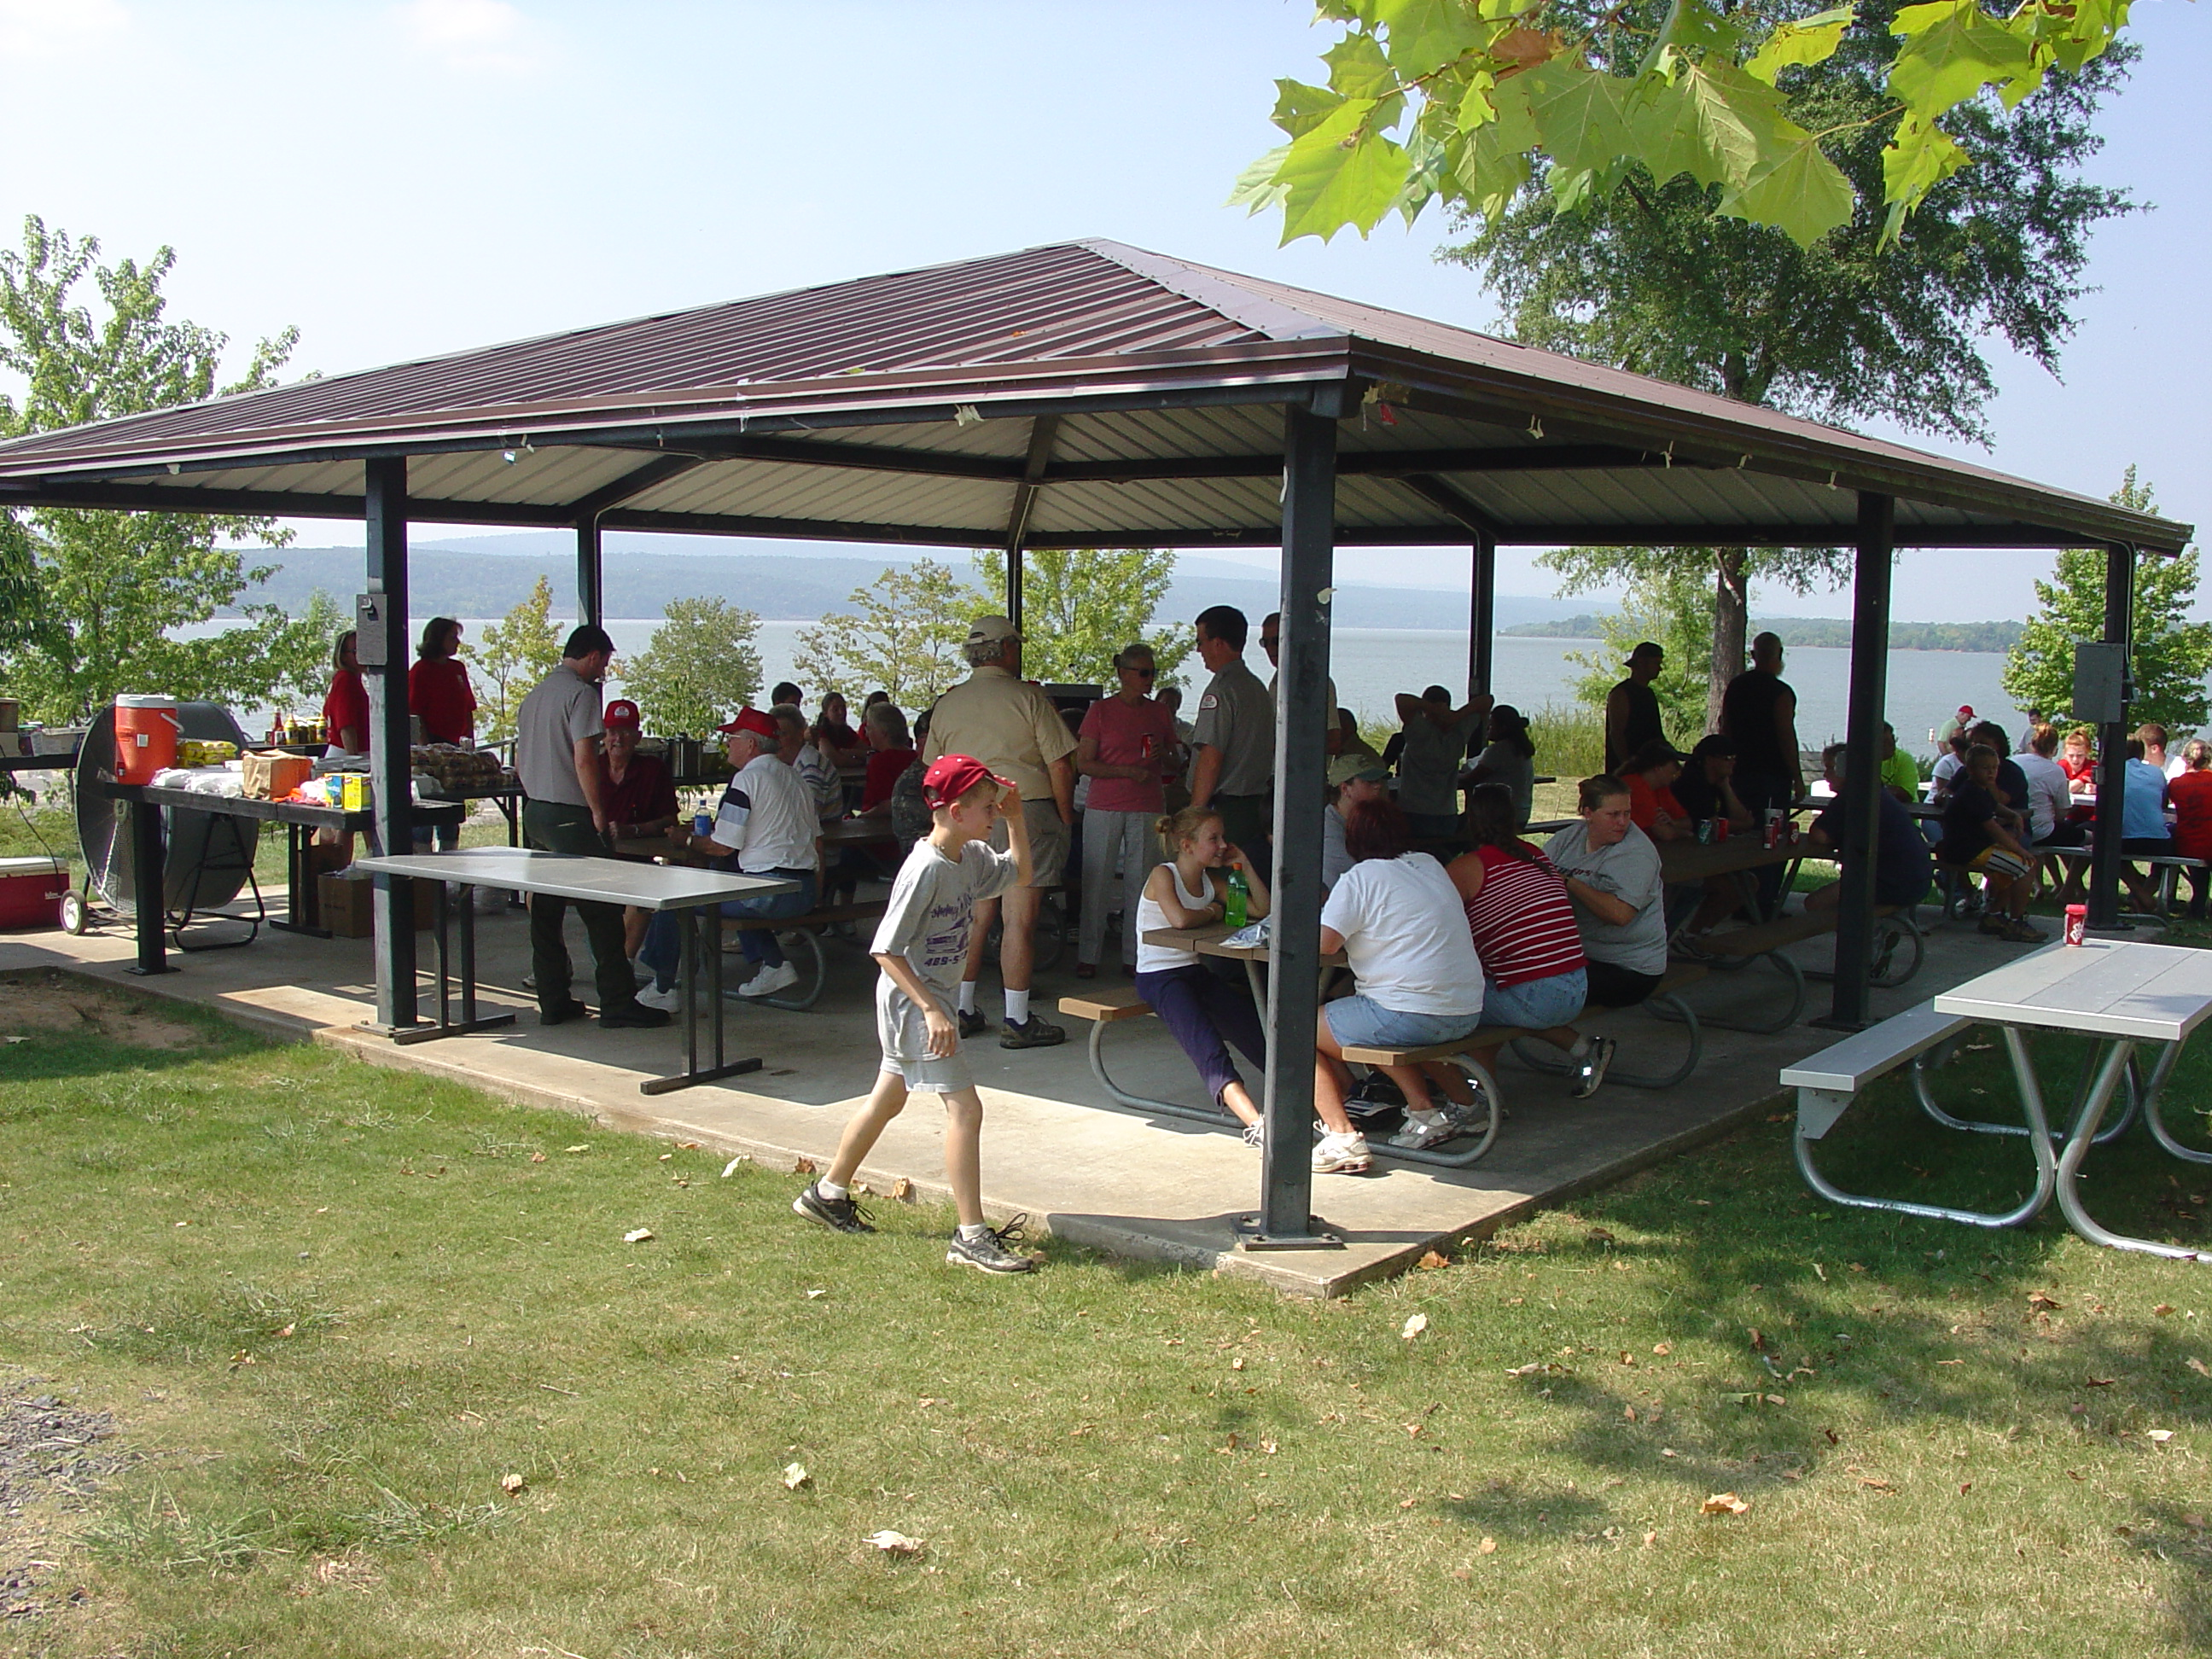 Group using picnic shelter at Carden Point.